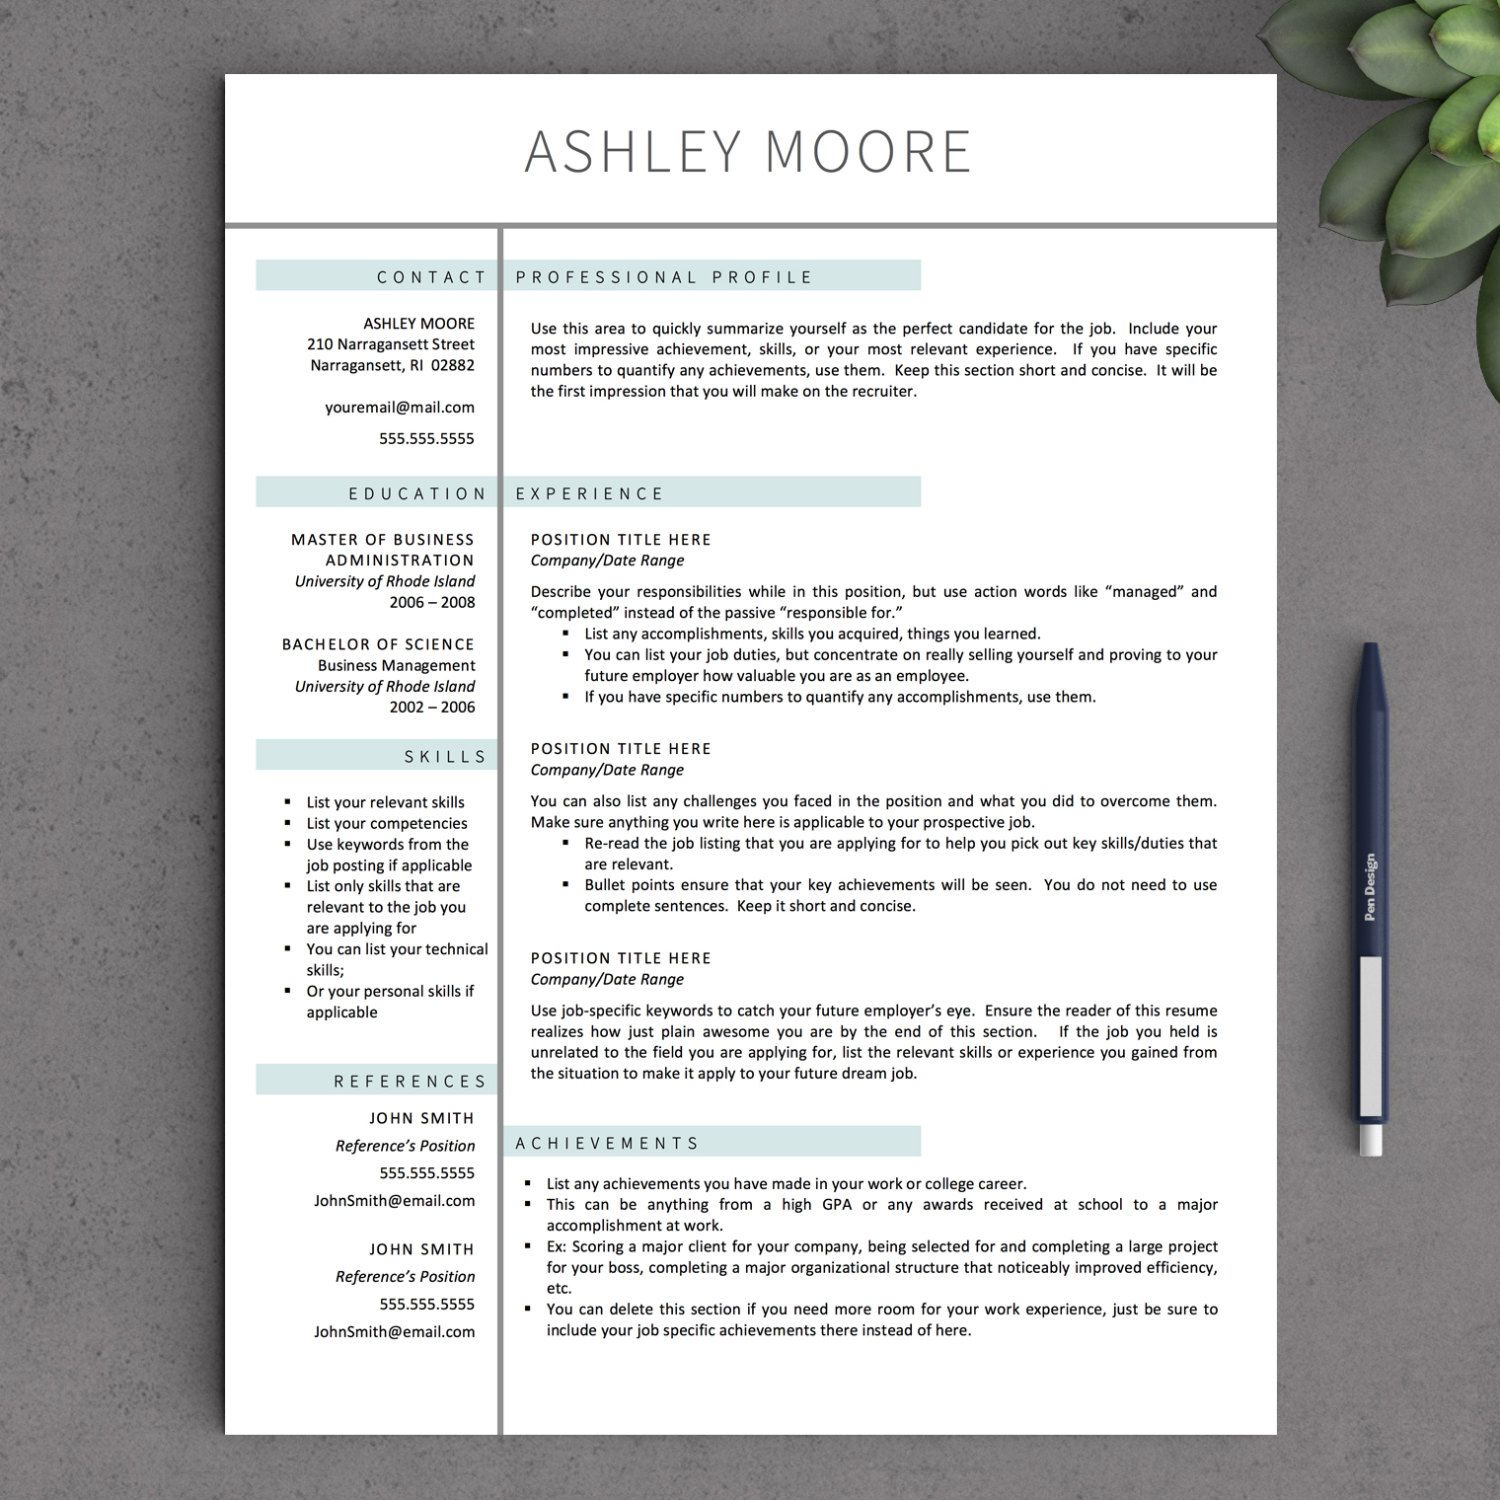 Nice 10 Steps To Creating A Resume Huge 10 Words To Put On Your Resume Clean 100 Greatest Resume Words 100 Resume Words Young 10x10 Grid Template Red12 Tab Divider Template Resume Template For Pages | Resume Format Download Pdf